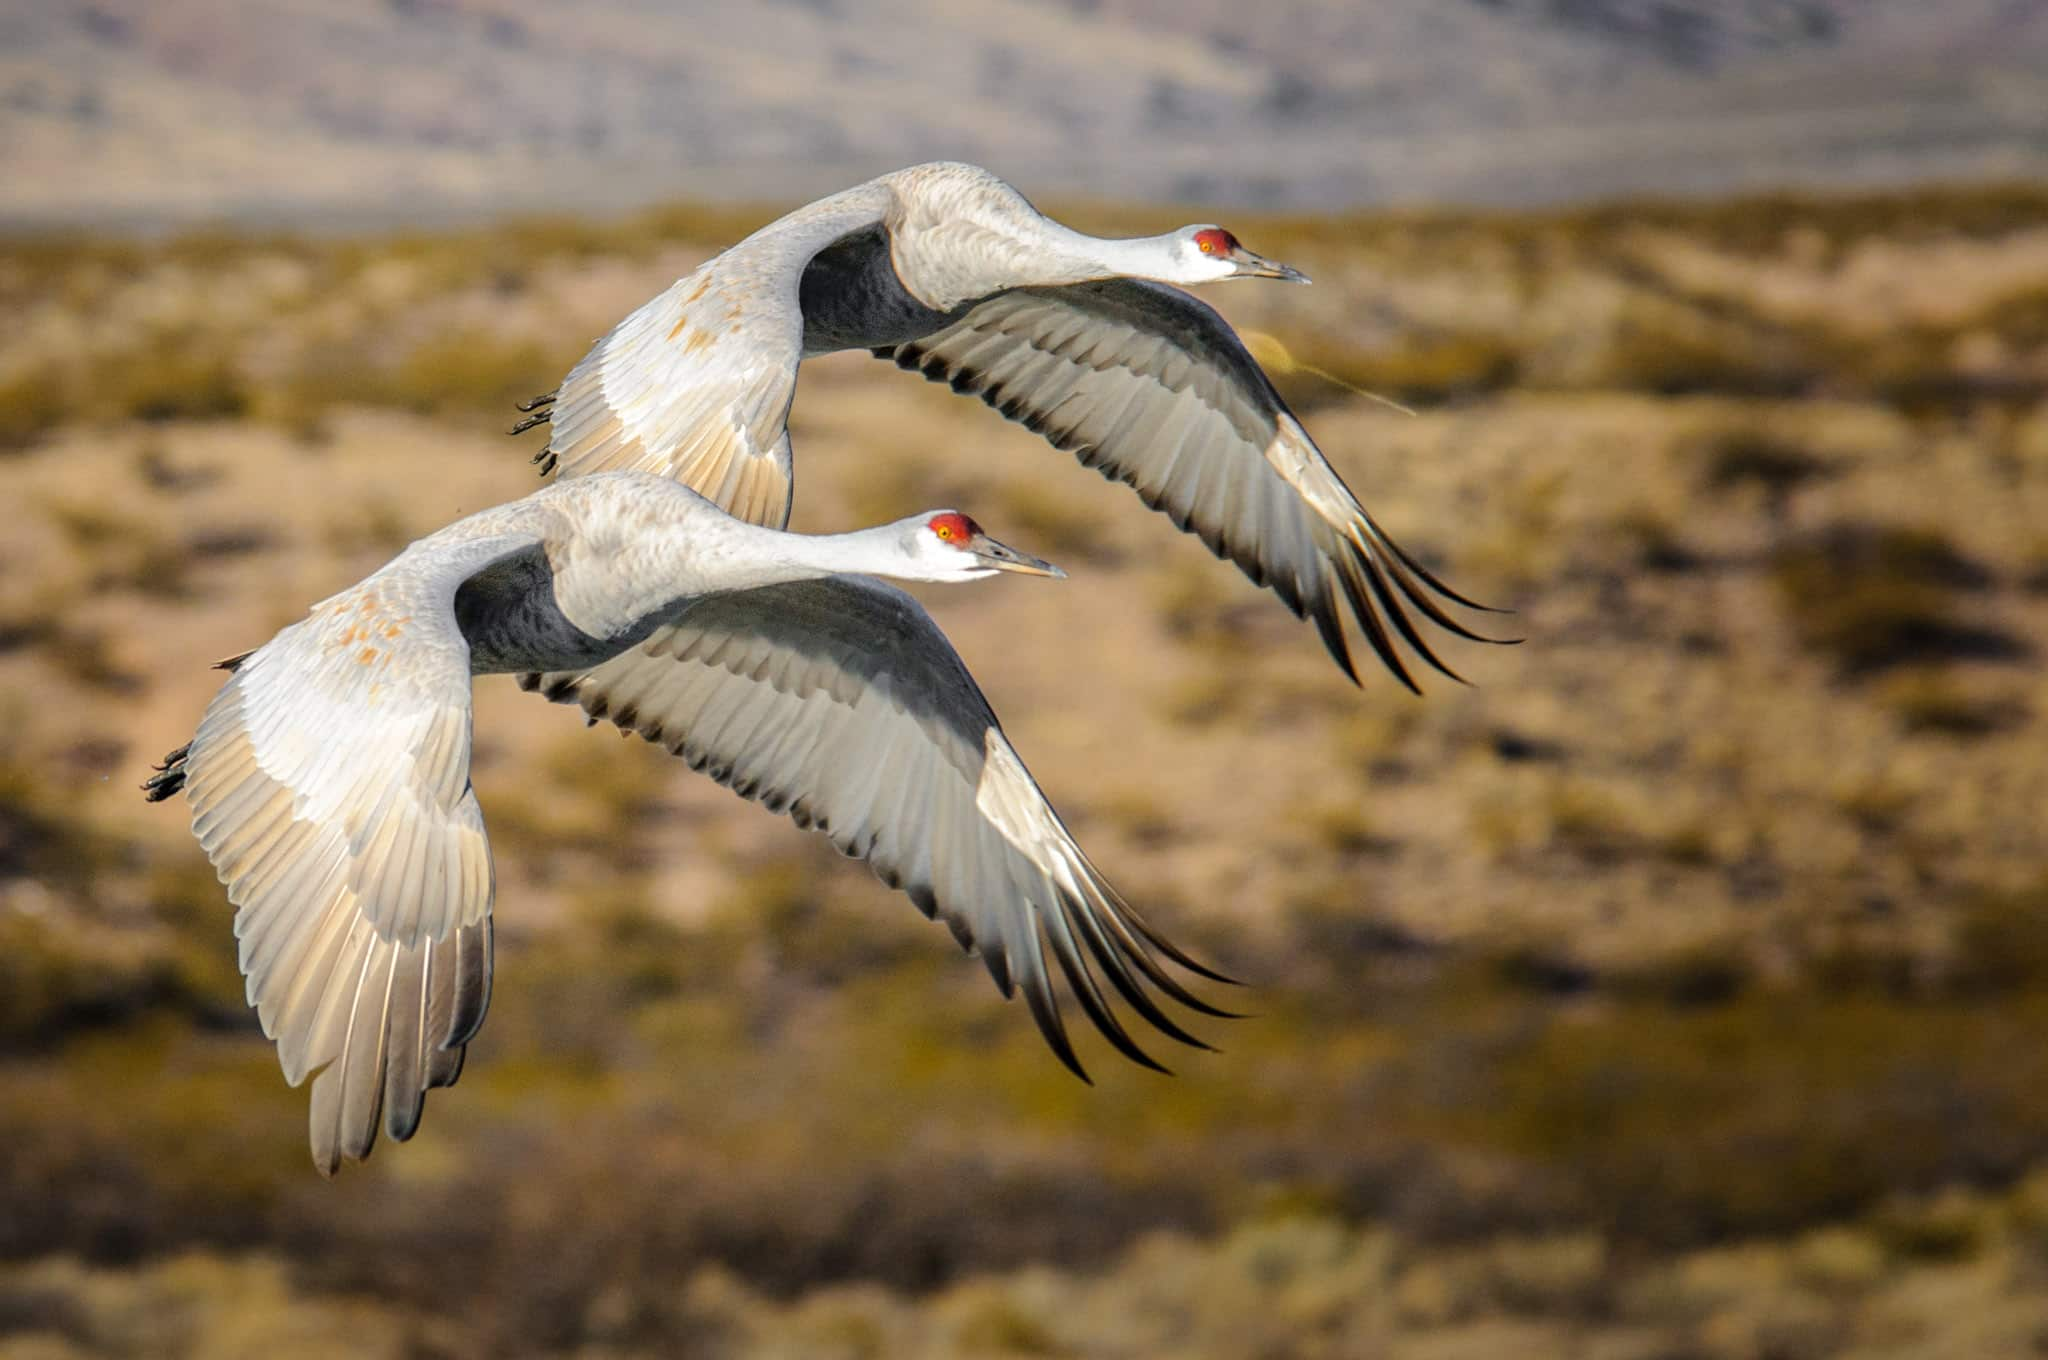 Sandhill Cranes make their morning departure from  the Bosque del Apache National Wildlife Refuge, near Socorro, New Mexico.